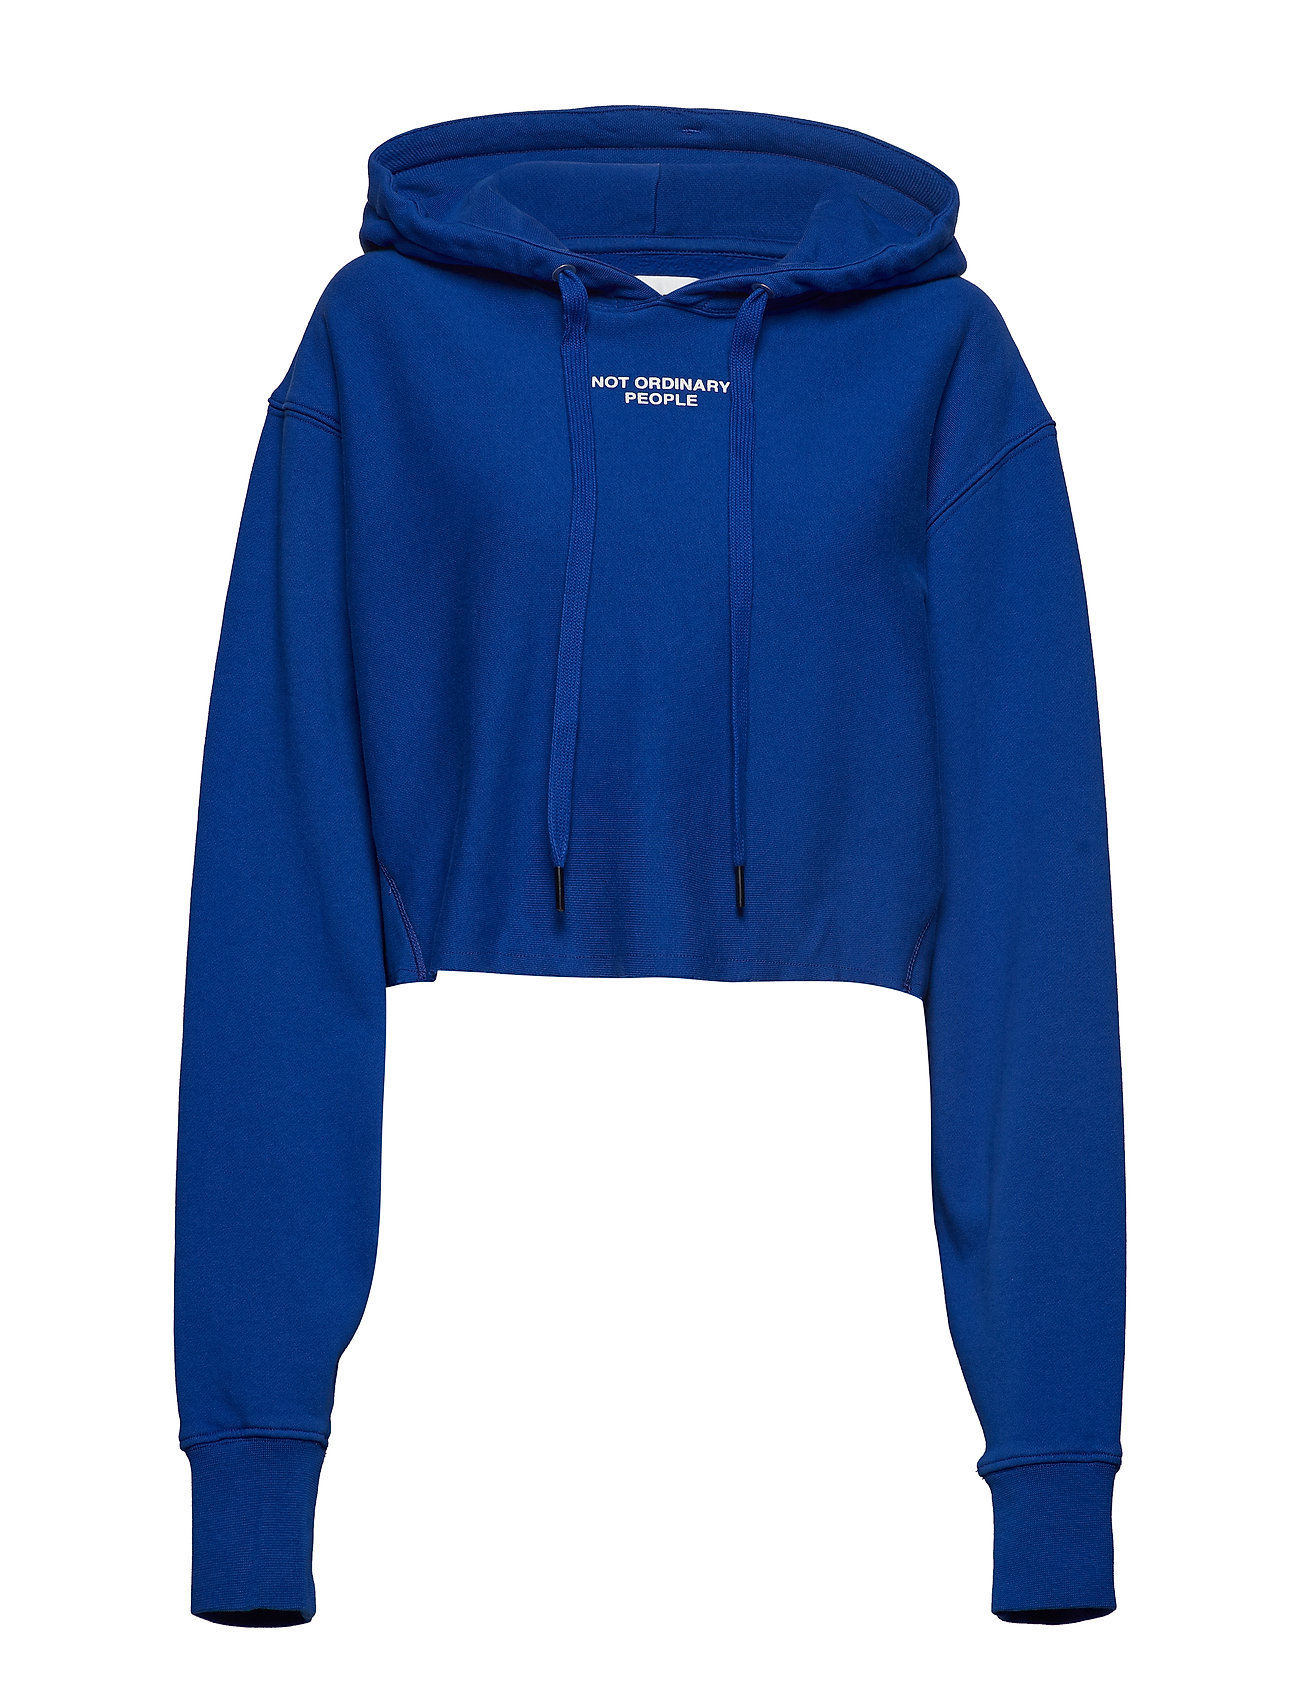 Replay Jumper - ELECTRIC BLUE